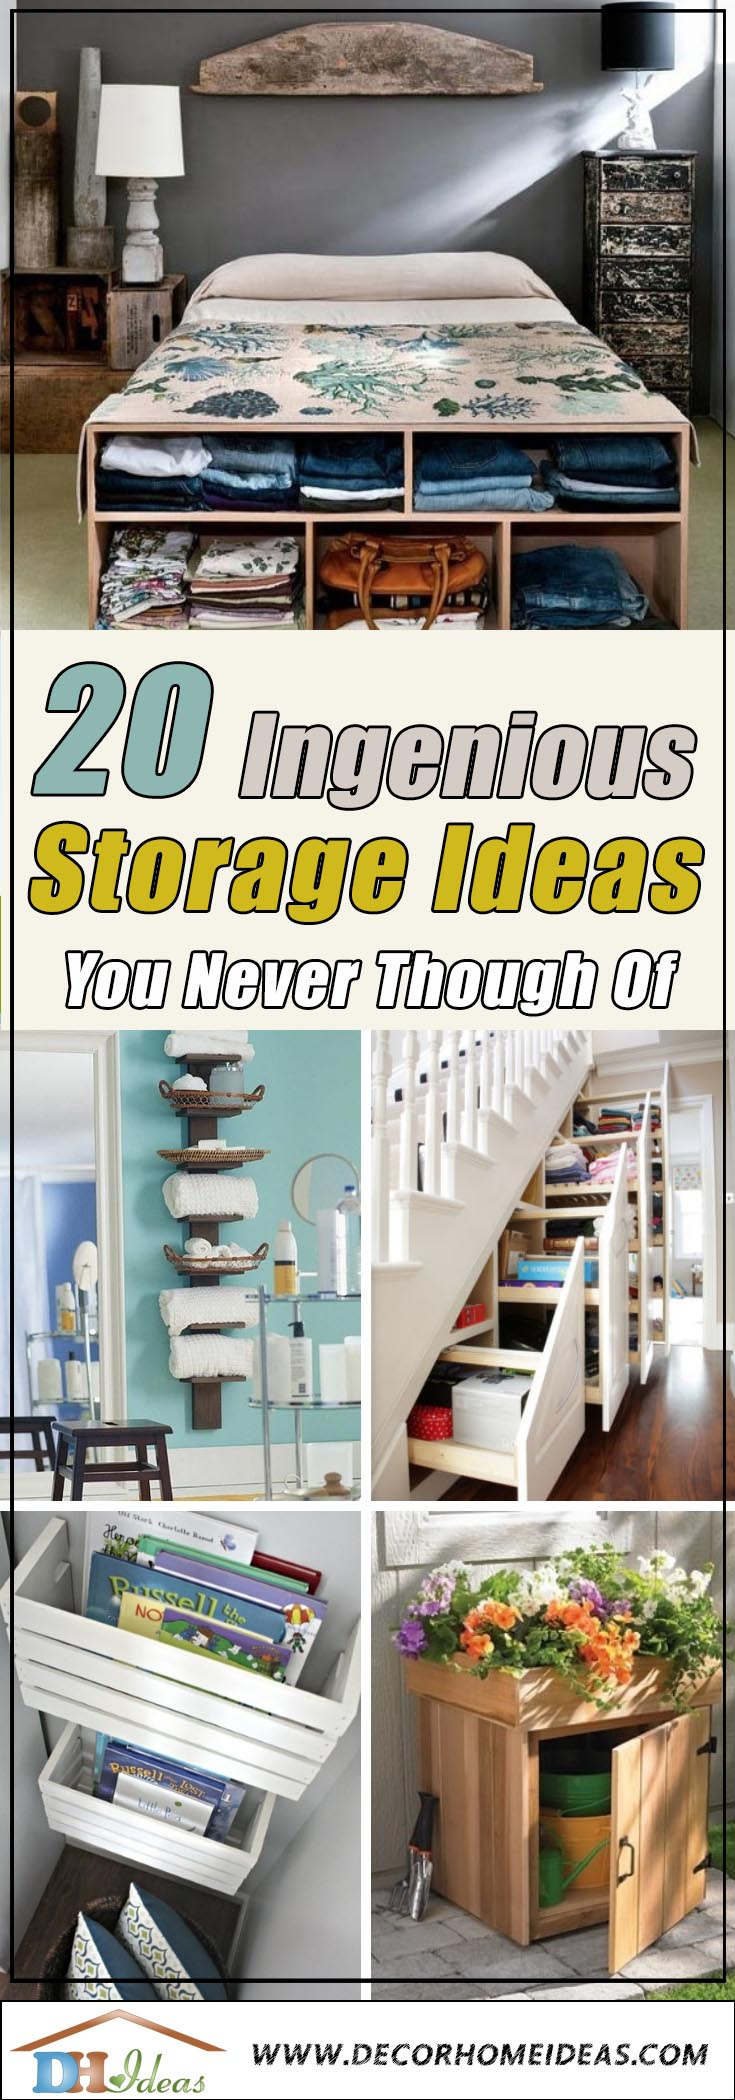 20 Ingenious Storage Ideas That You Never Thought Of #storage #organization #homedecor #ideas #decorhomeideas